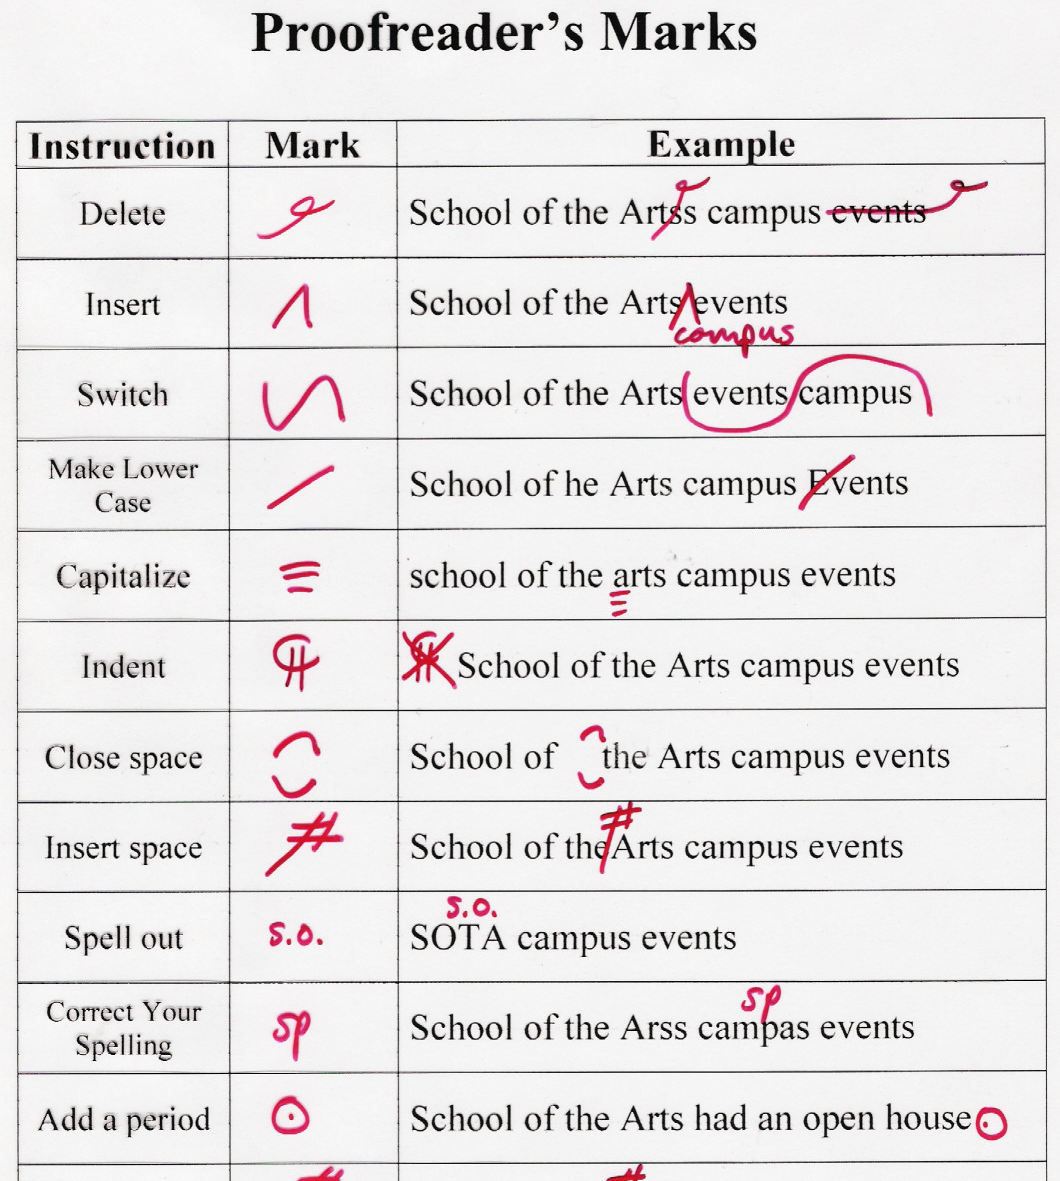 022 Essay Example Grammar Check My Images About Grammer Infographics College Checker Surprising Your For Mistakes Free Correct Full